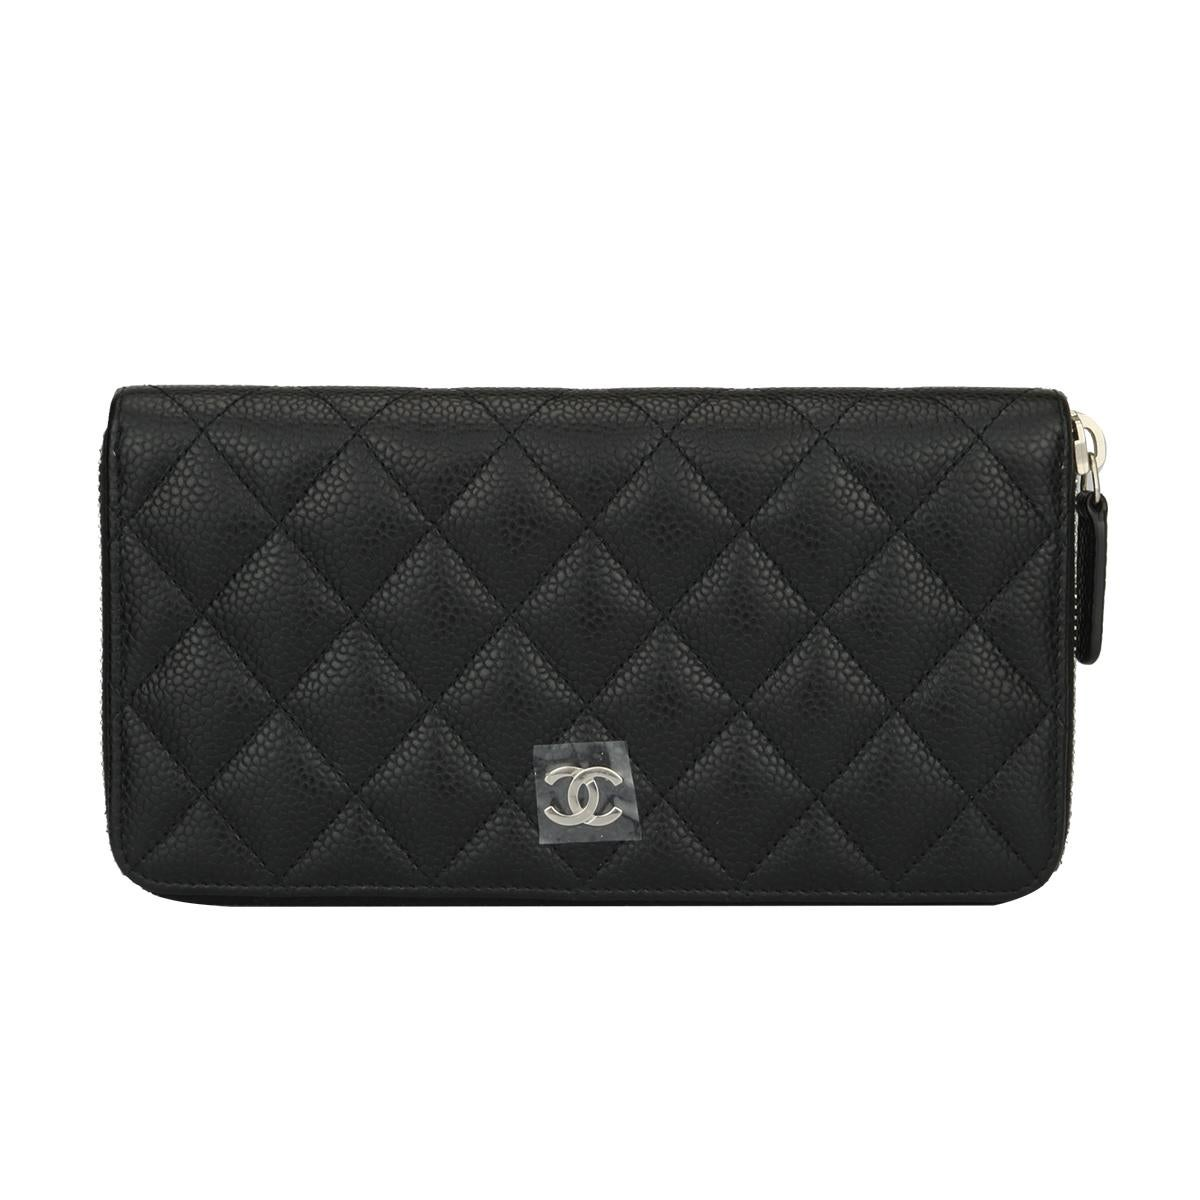 aa4730580c33 Chanel Caviar Handbags - 540 For Sale on 1stdibs